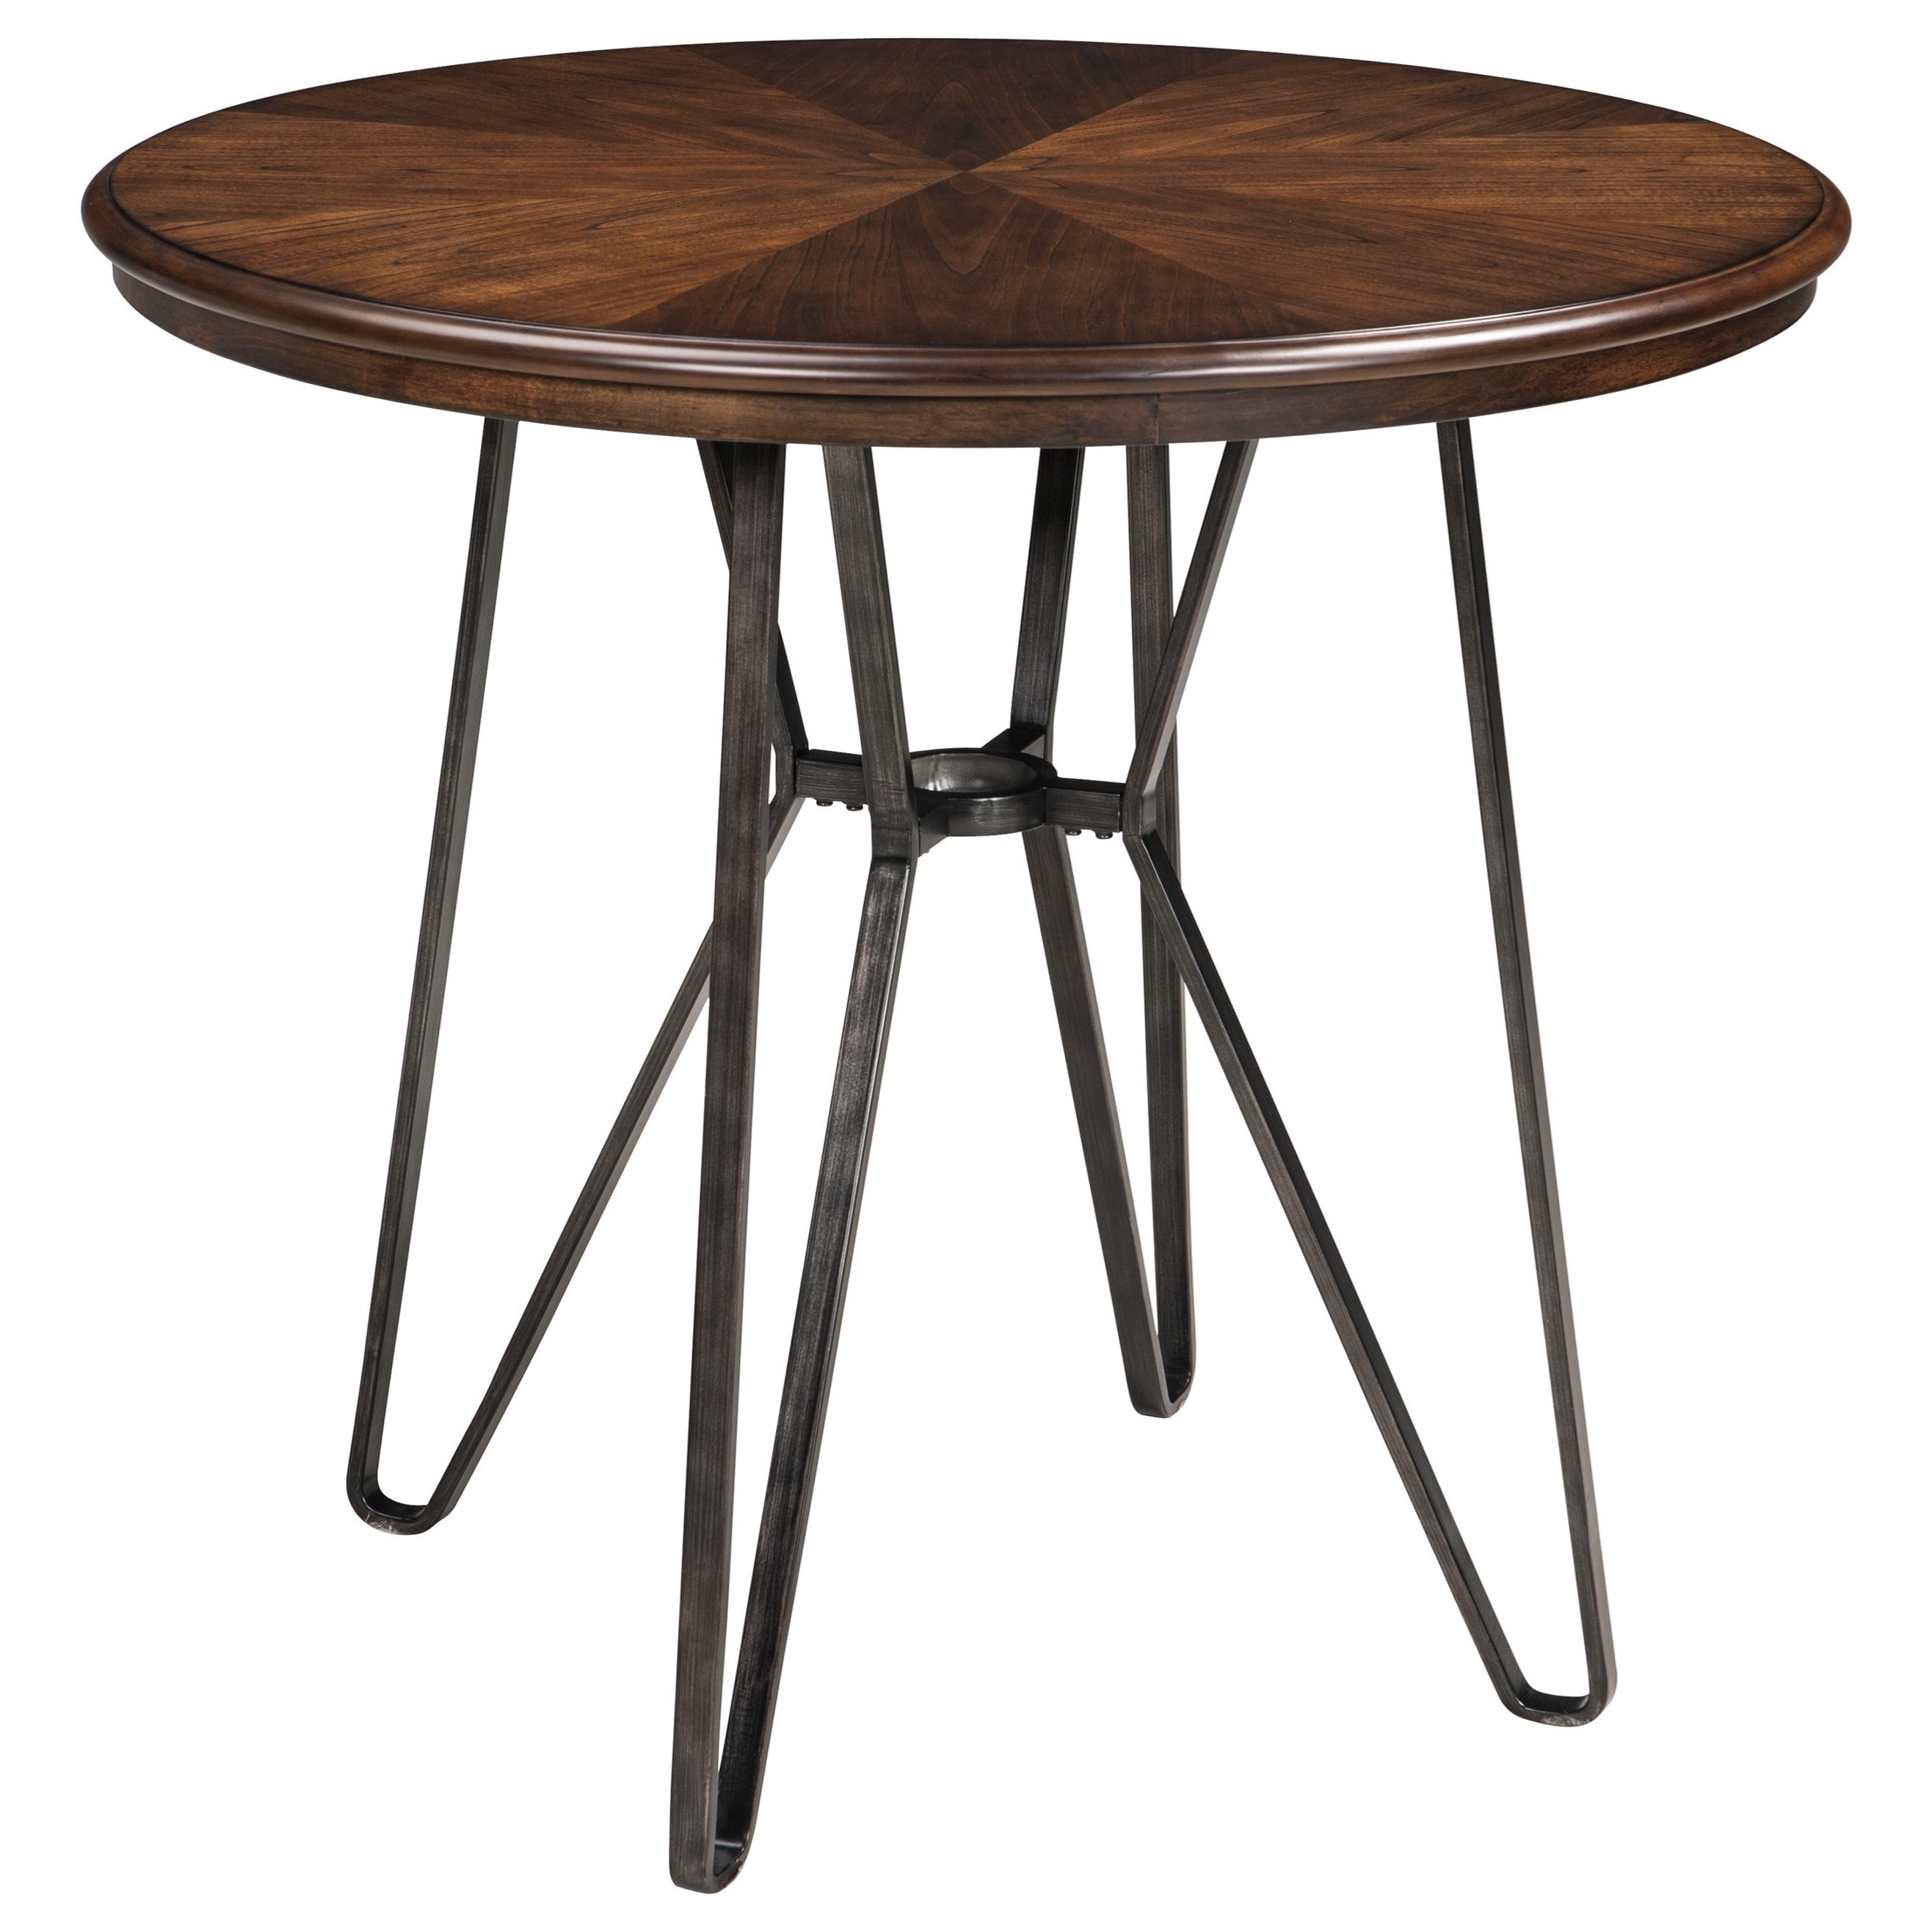 Signature design by ashley centiar d372 13 round dining for Metal dining table